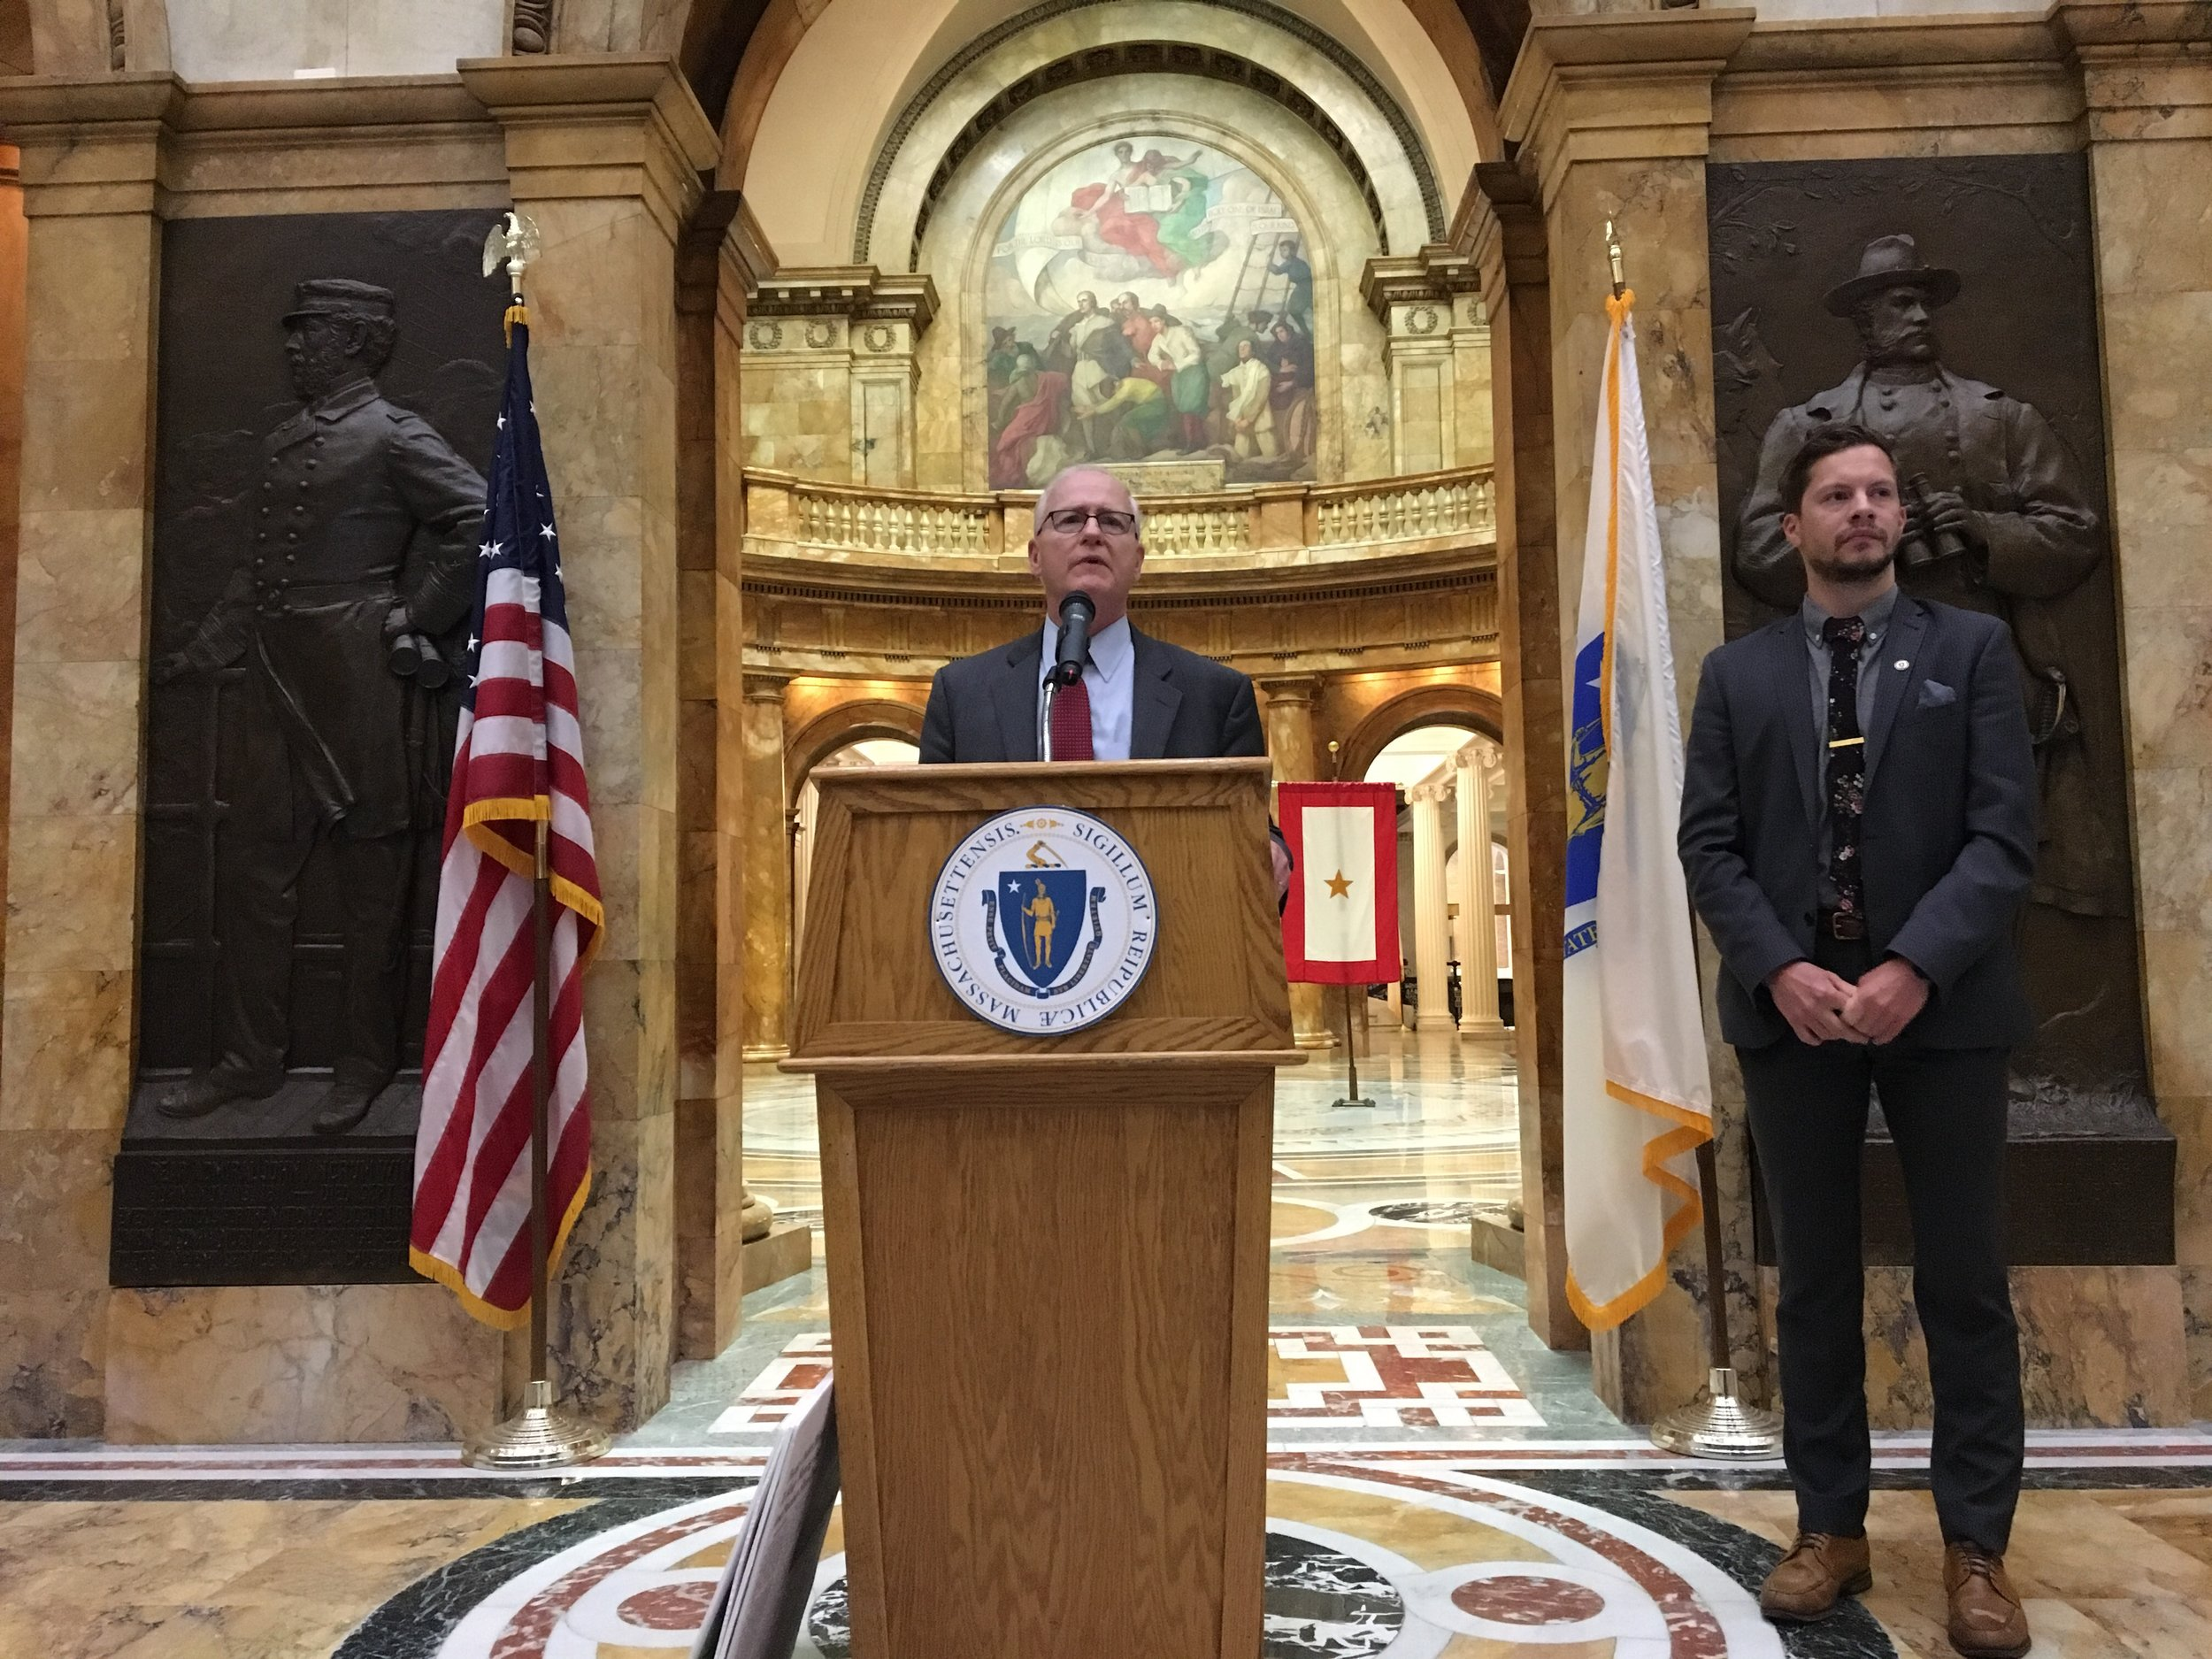 Senator Michael Barrett (D-Third Middlesex) with ClimateXChange Executive Director, Michael Green speaking about carbon pricing at the Massachusetts State House.